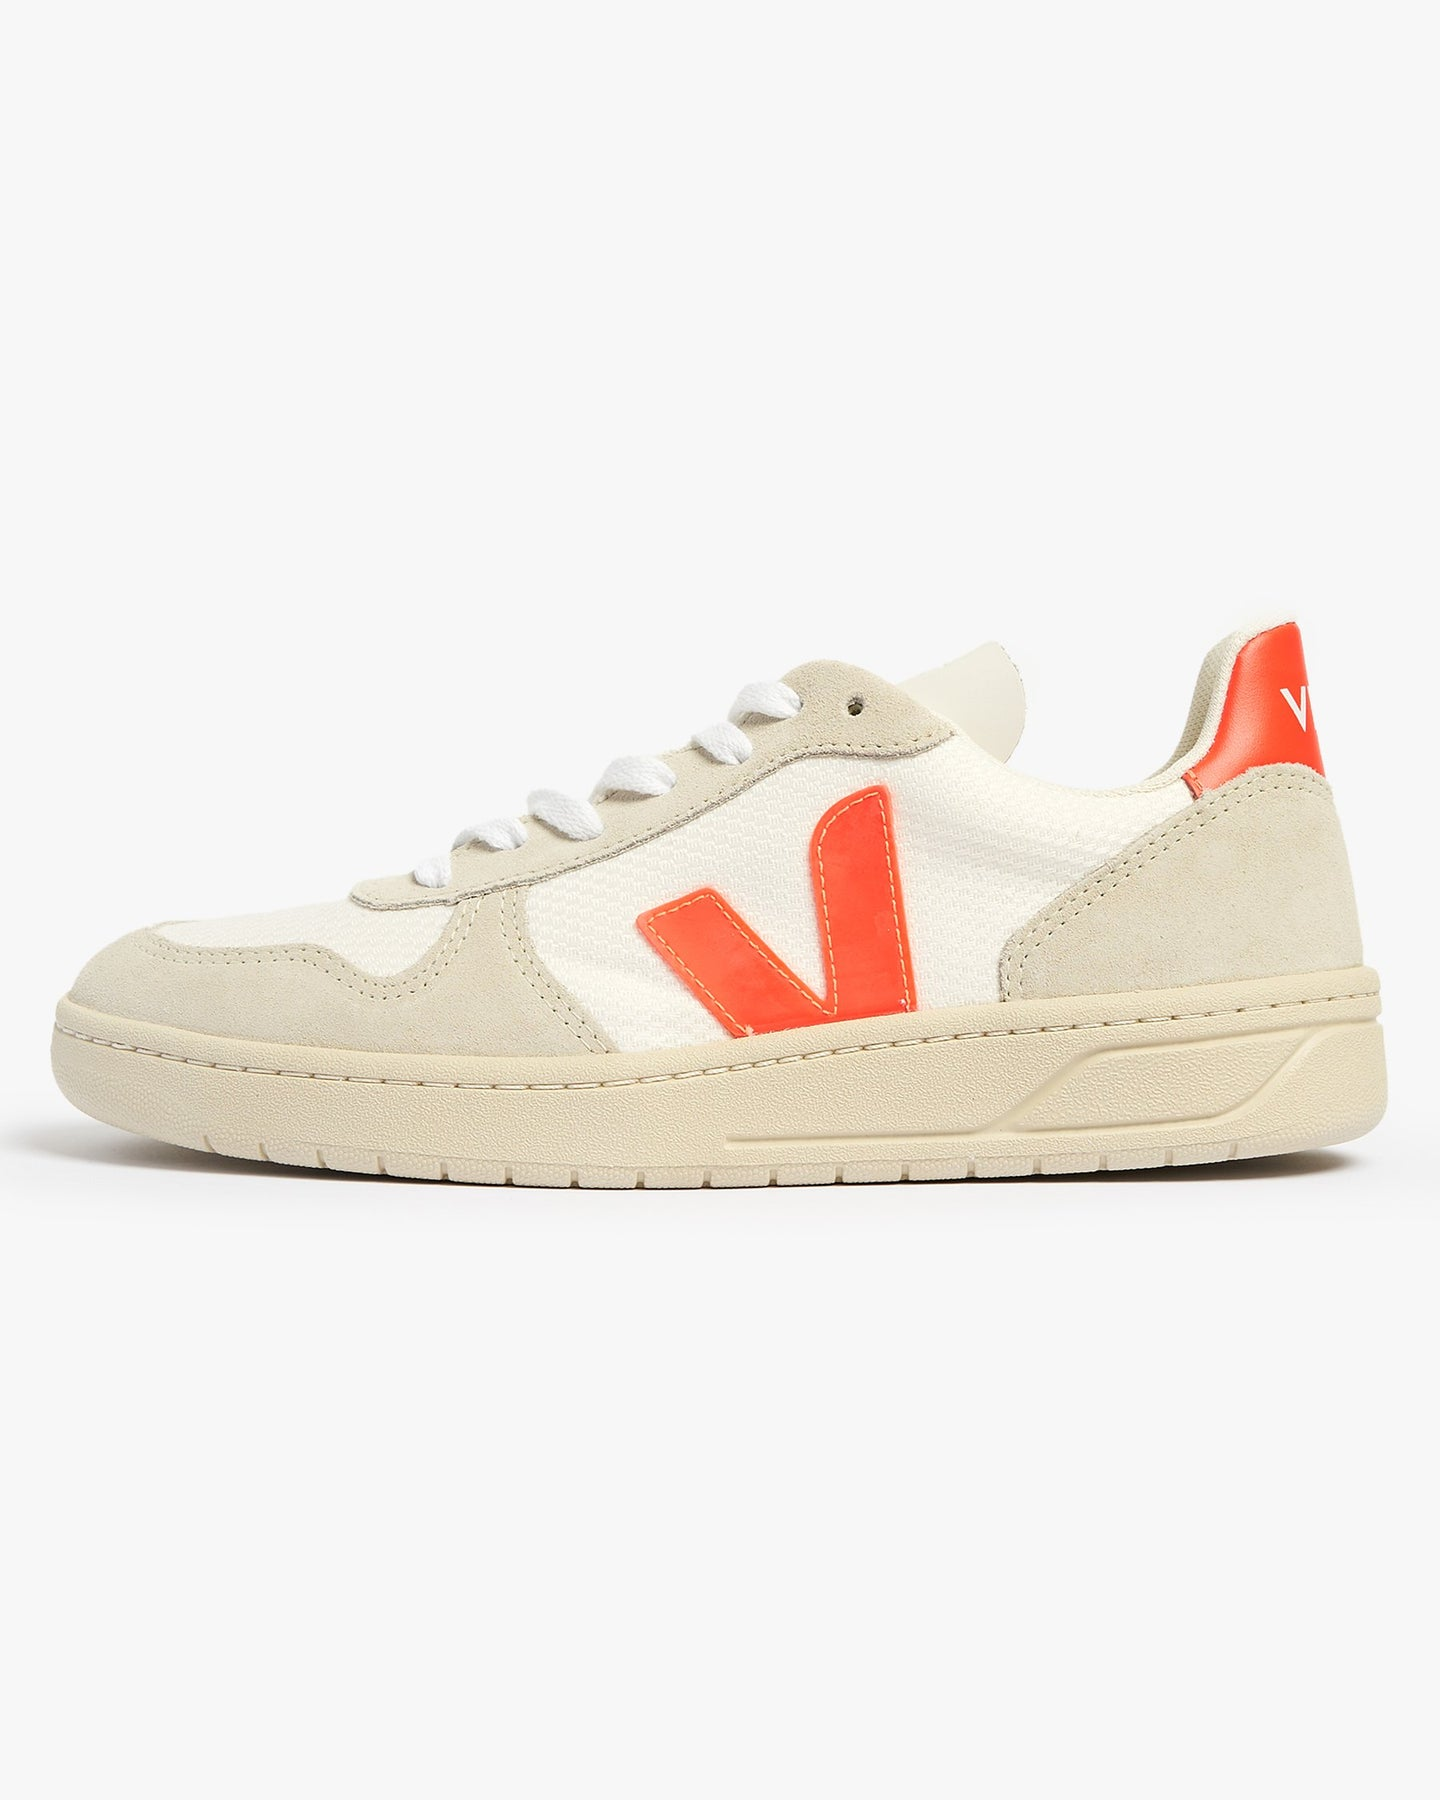 Veja Womens V-10 B-Mesh Sneakers - White / Natural / Orange Fluo UK 4 VXW0125014 Veja Trainers